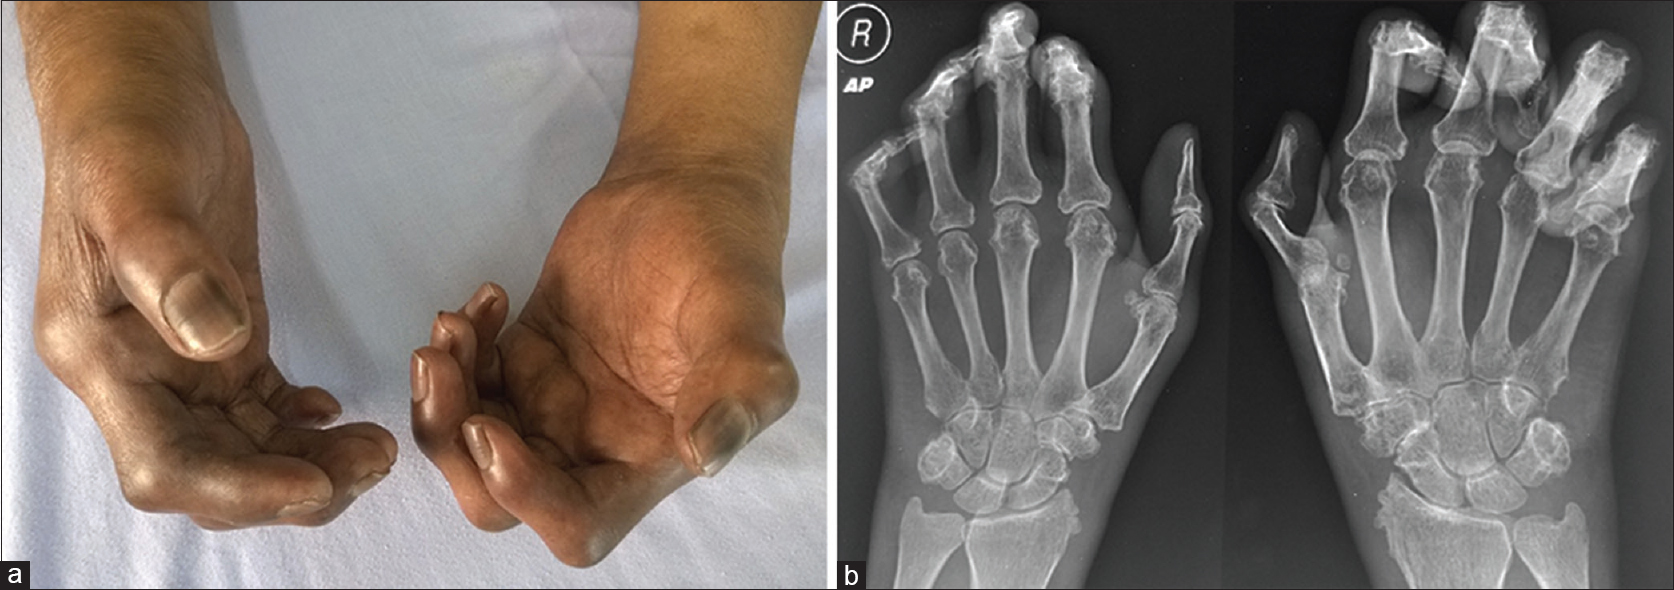 Figure 1: (a) Fingers of both the hands showing flexion contracture, darkly pigmented with swelling of the palmar fascia. (b) Hand radiographs posteroanterior view showing erosions in metacarpophalangeal, proximal interphalangeal, and distal interphalangeal joints with marked deformities